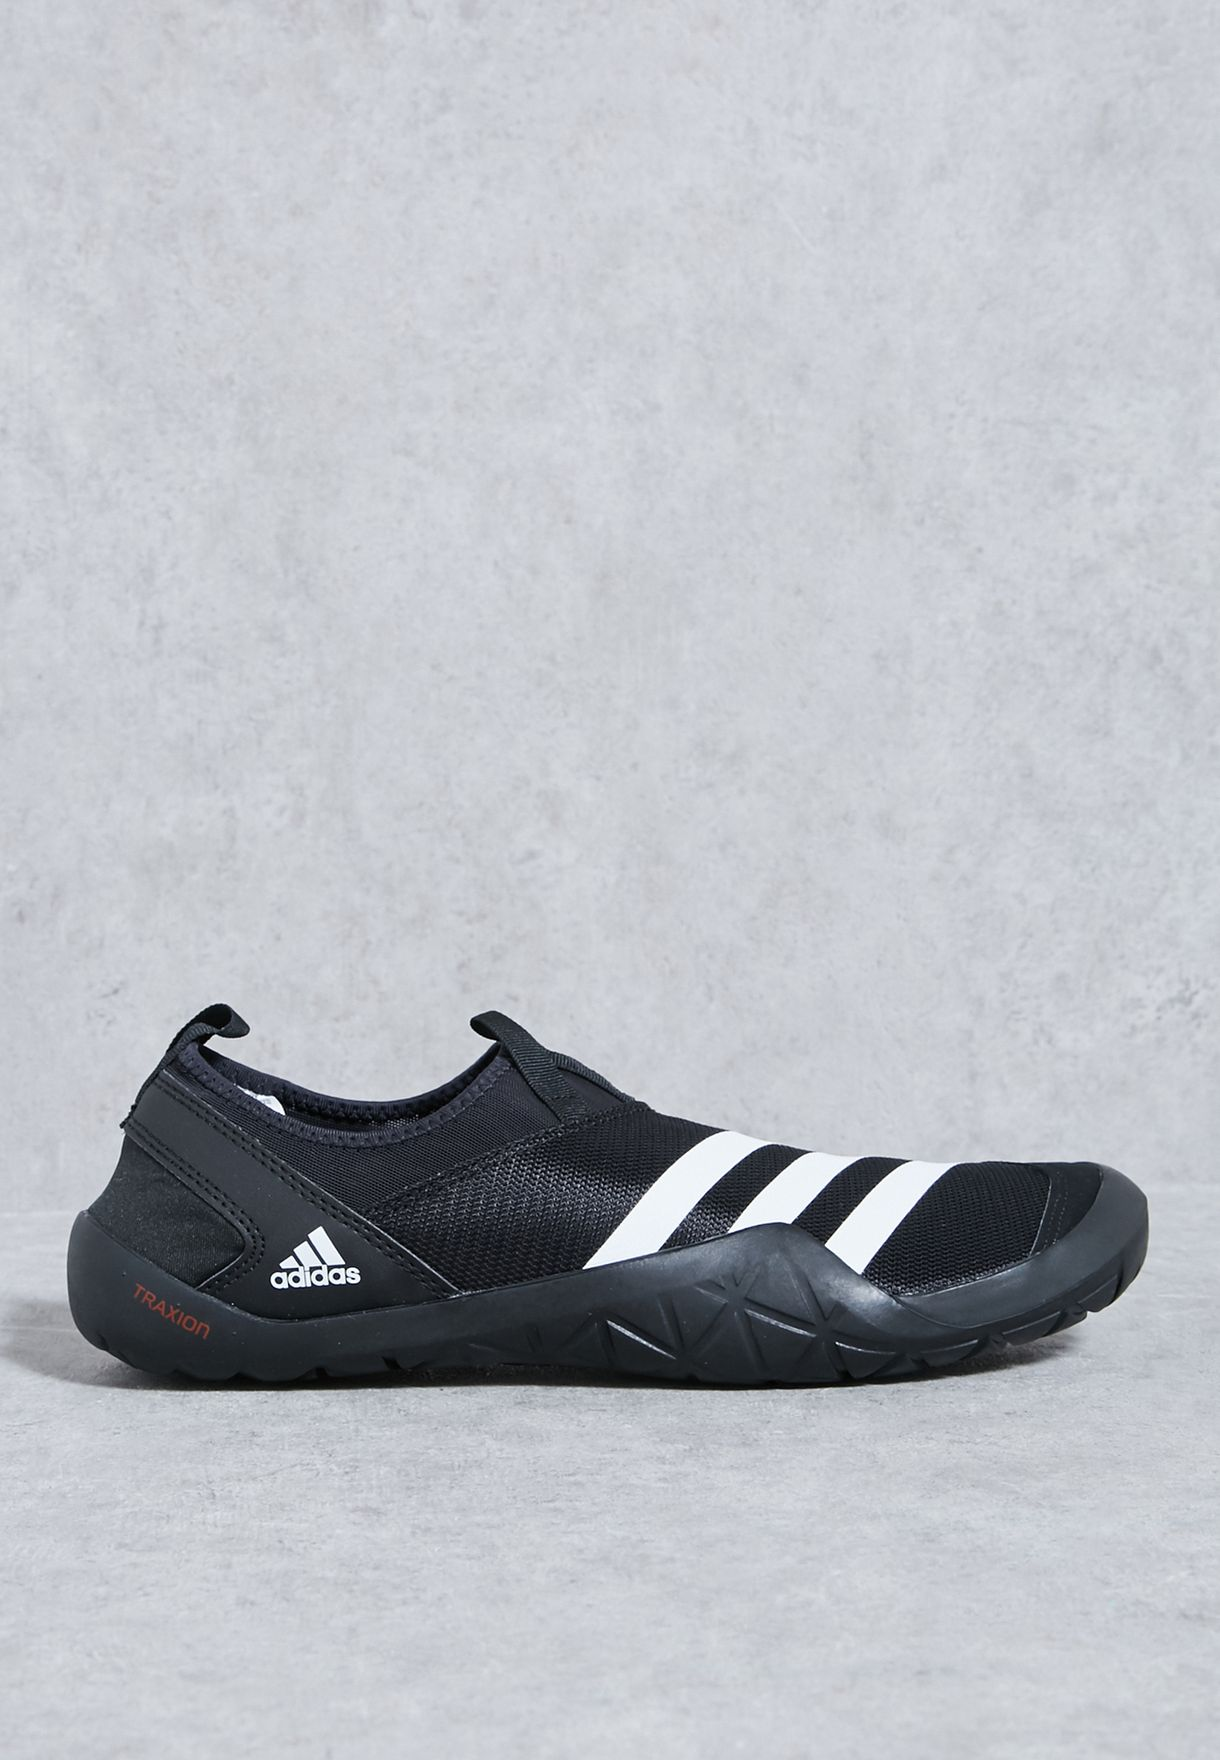 1baeb351cb8a Shop adidas black Climacool Jawpaw M29553 for Men in UAE - AD476SH08YTR